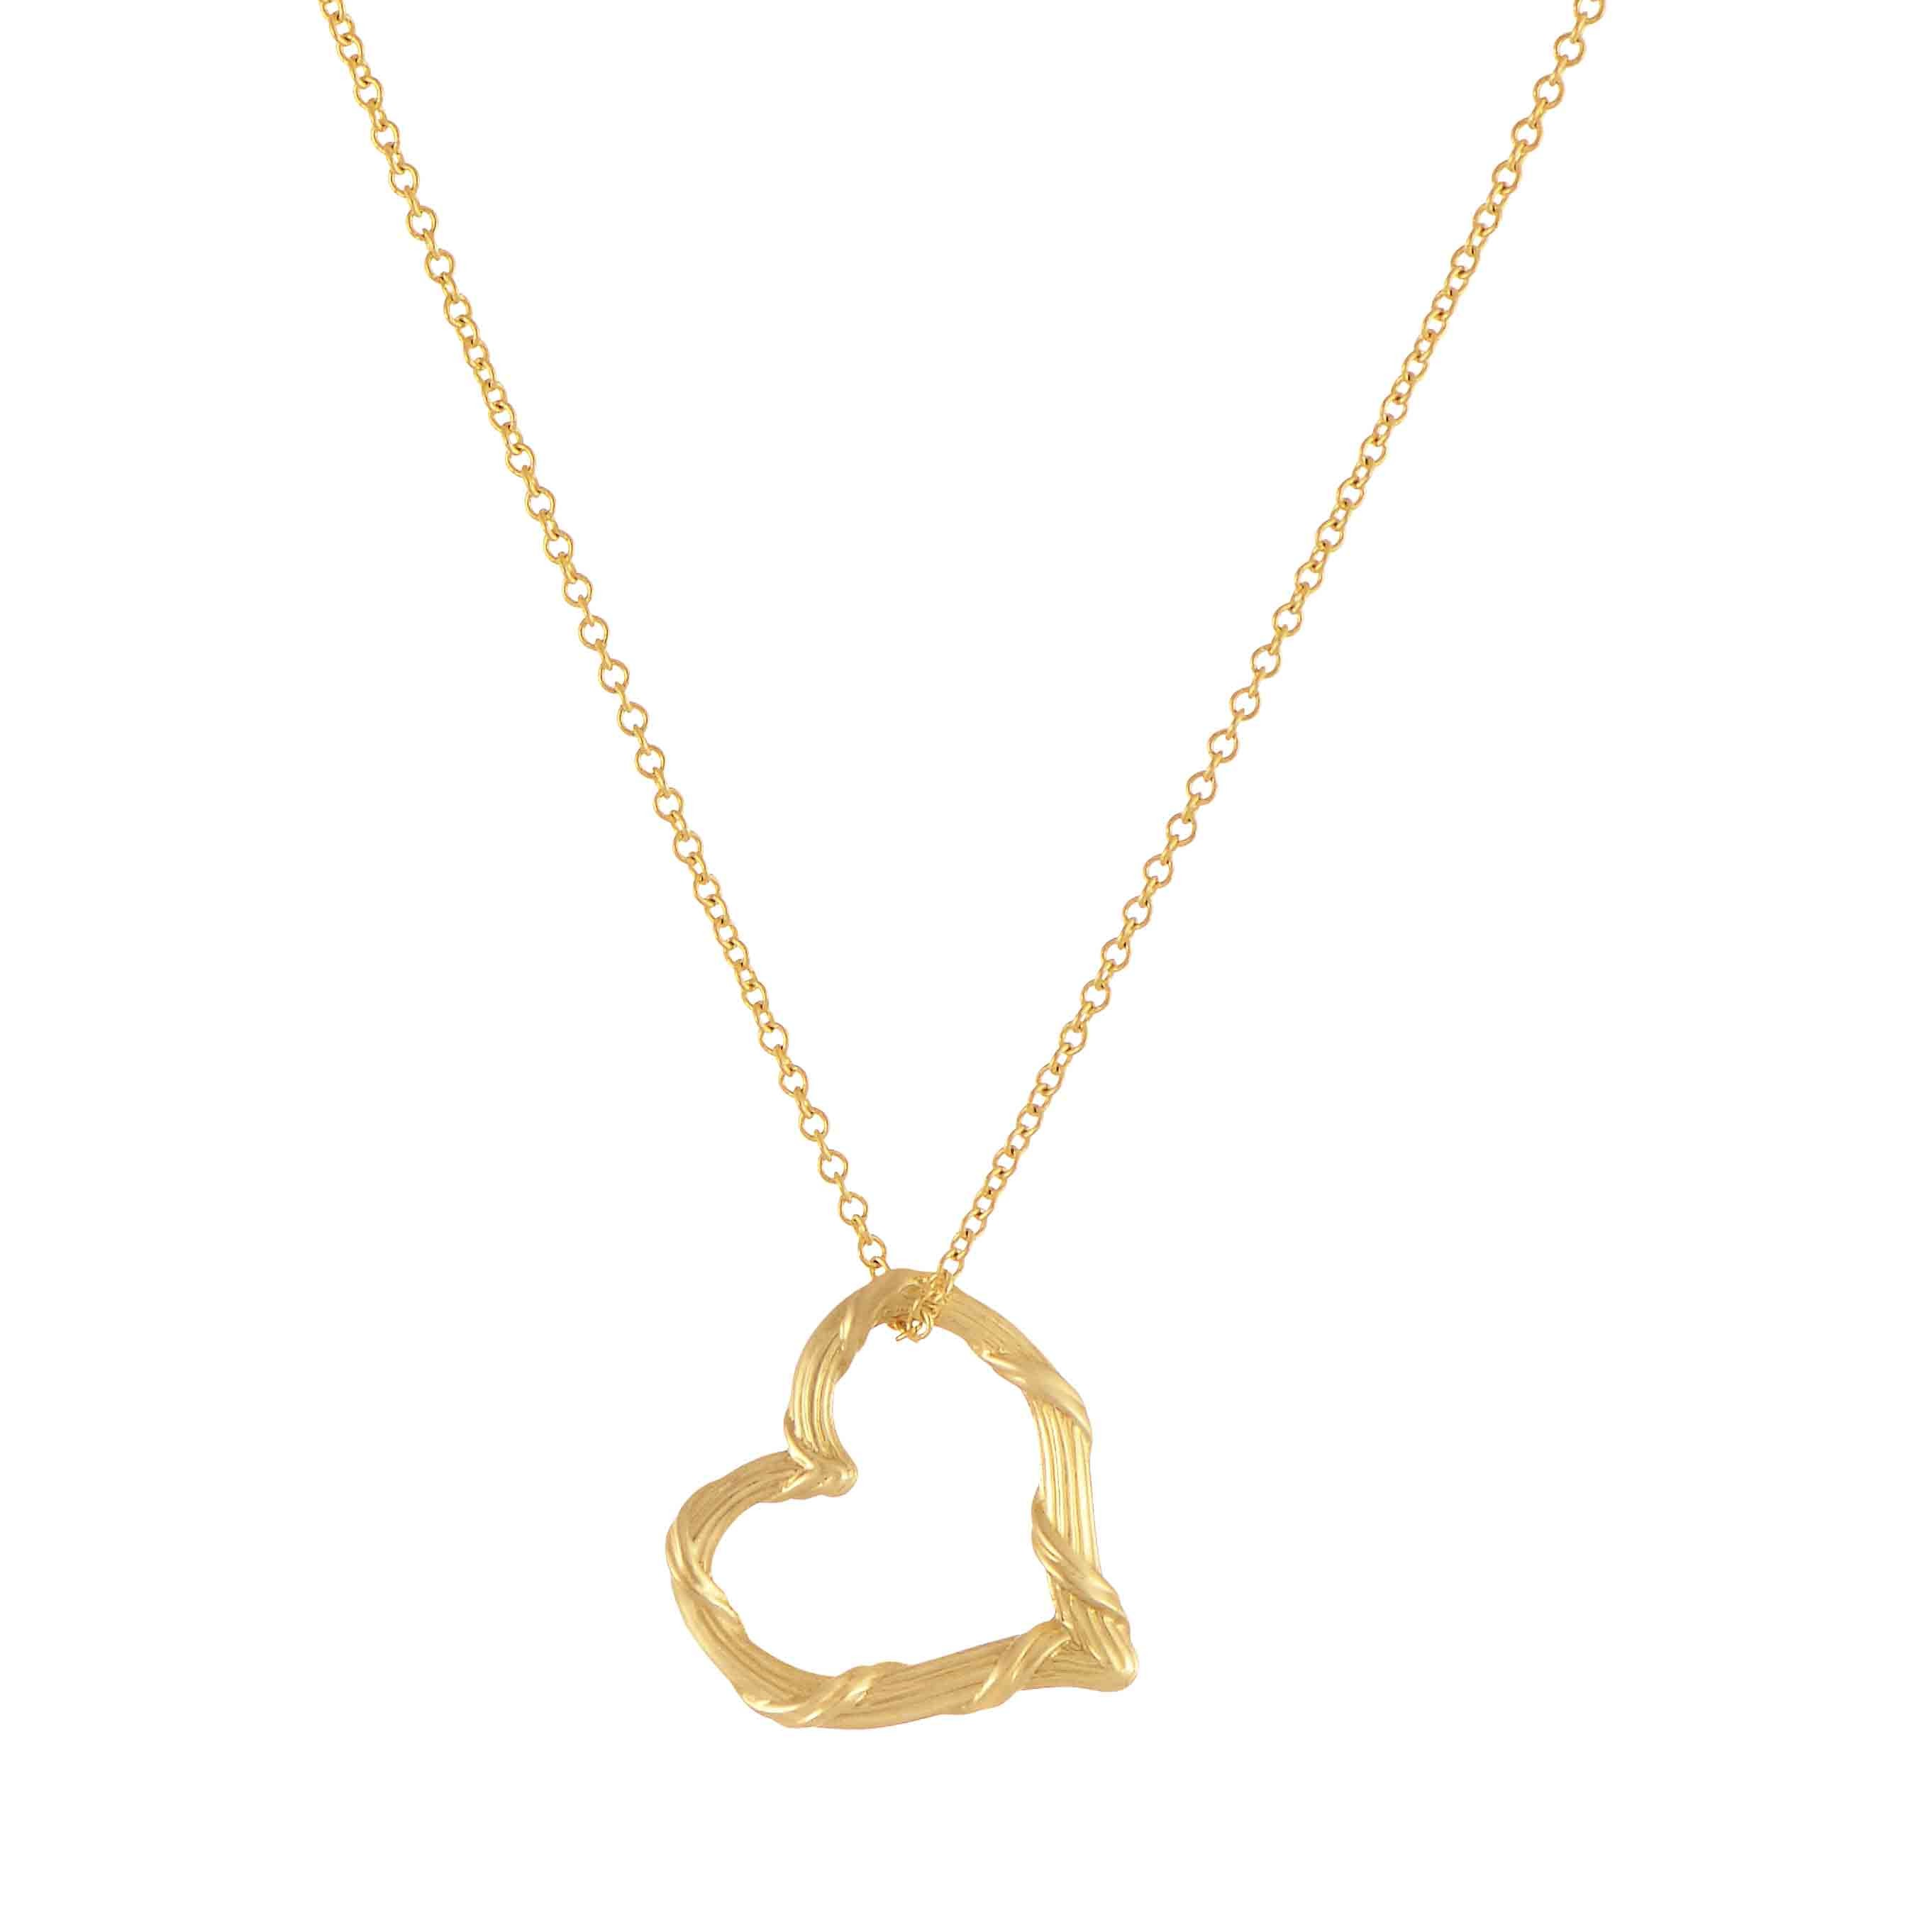 buymelissa john com pendant necklace at rsp odabash melissa gold pdp johnlewis heart online main lewis mini